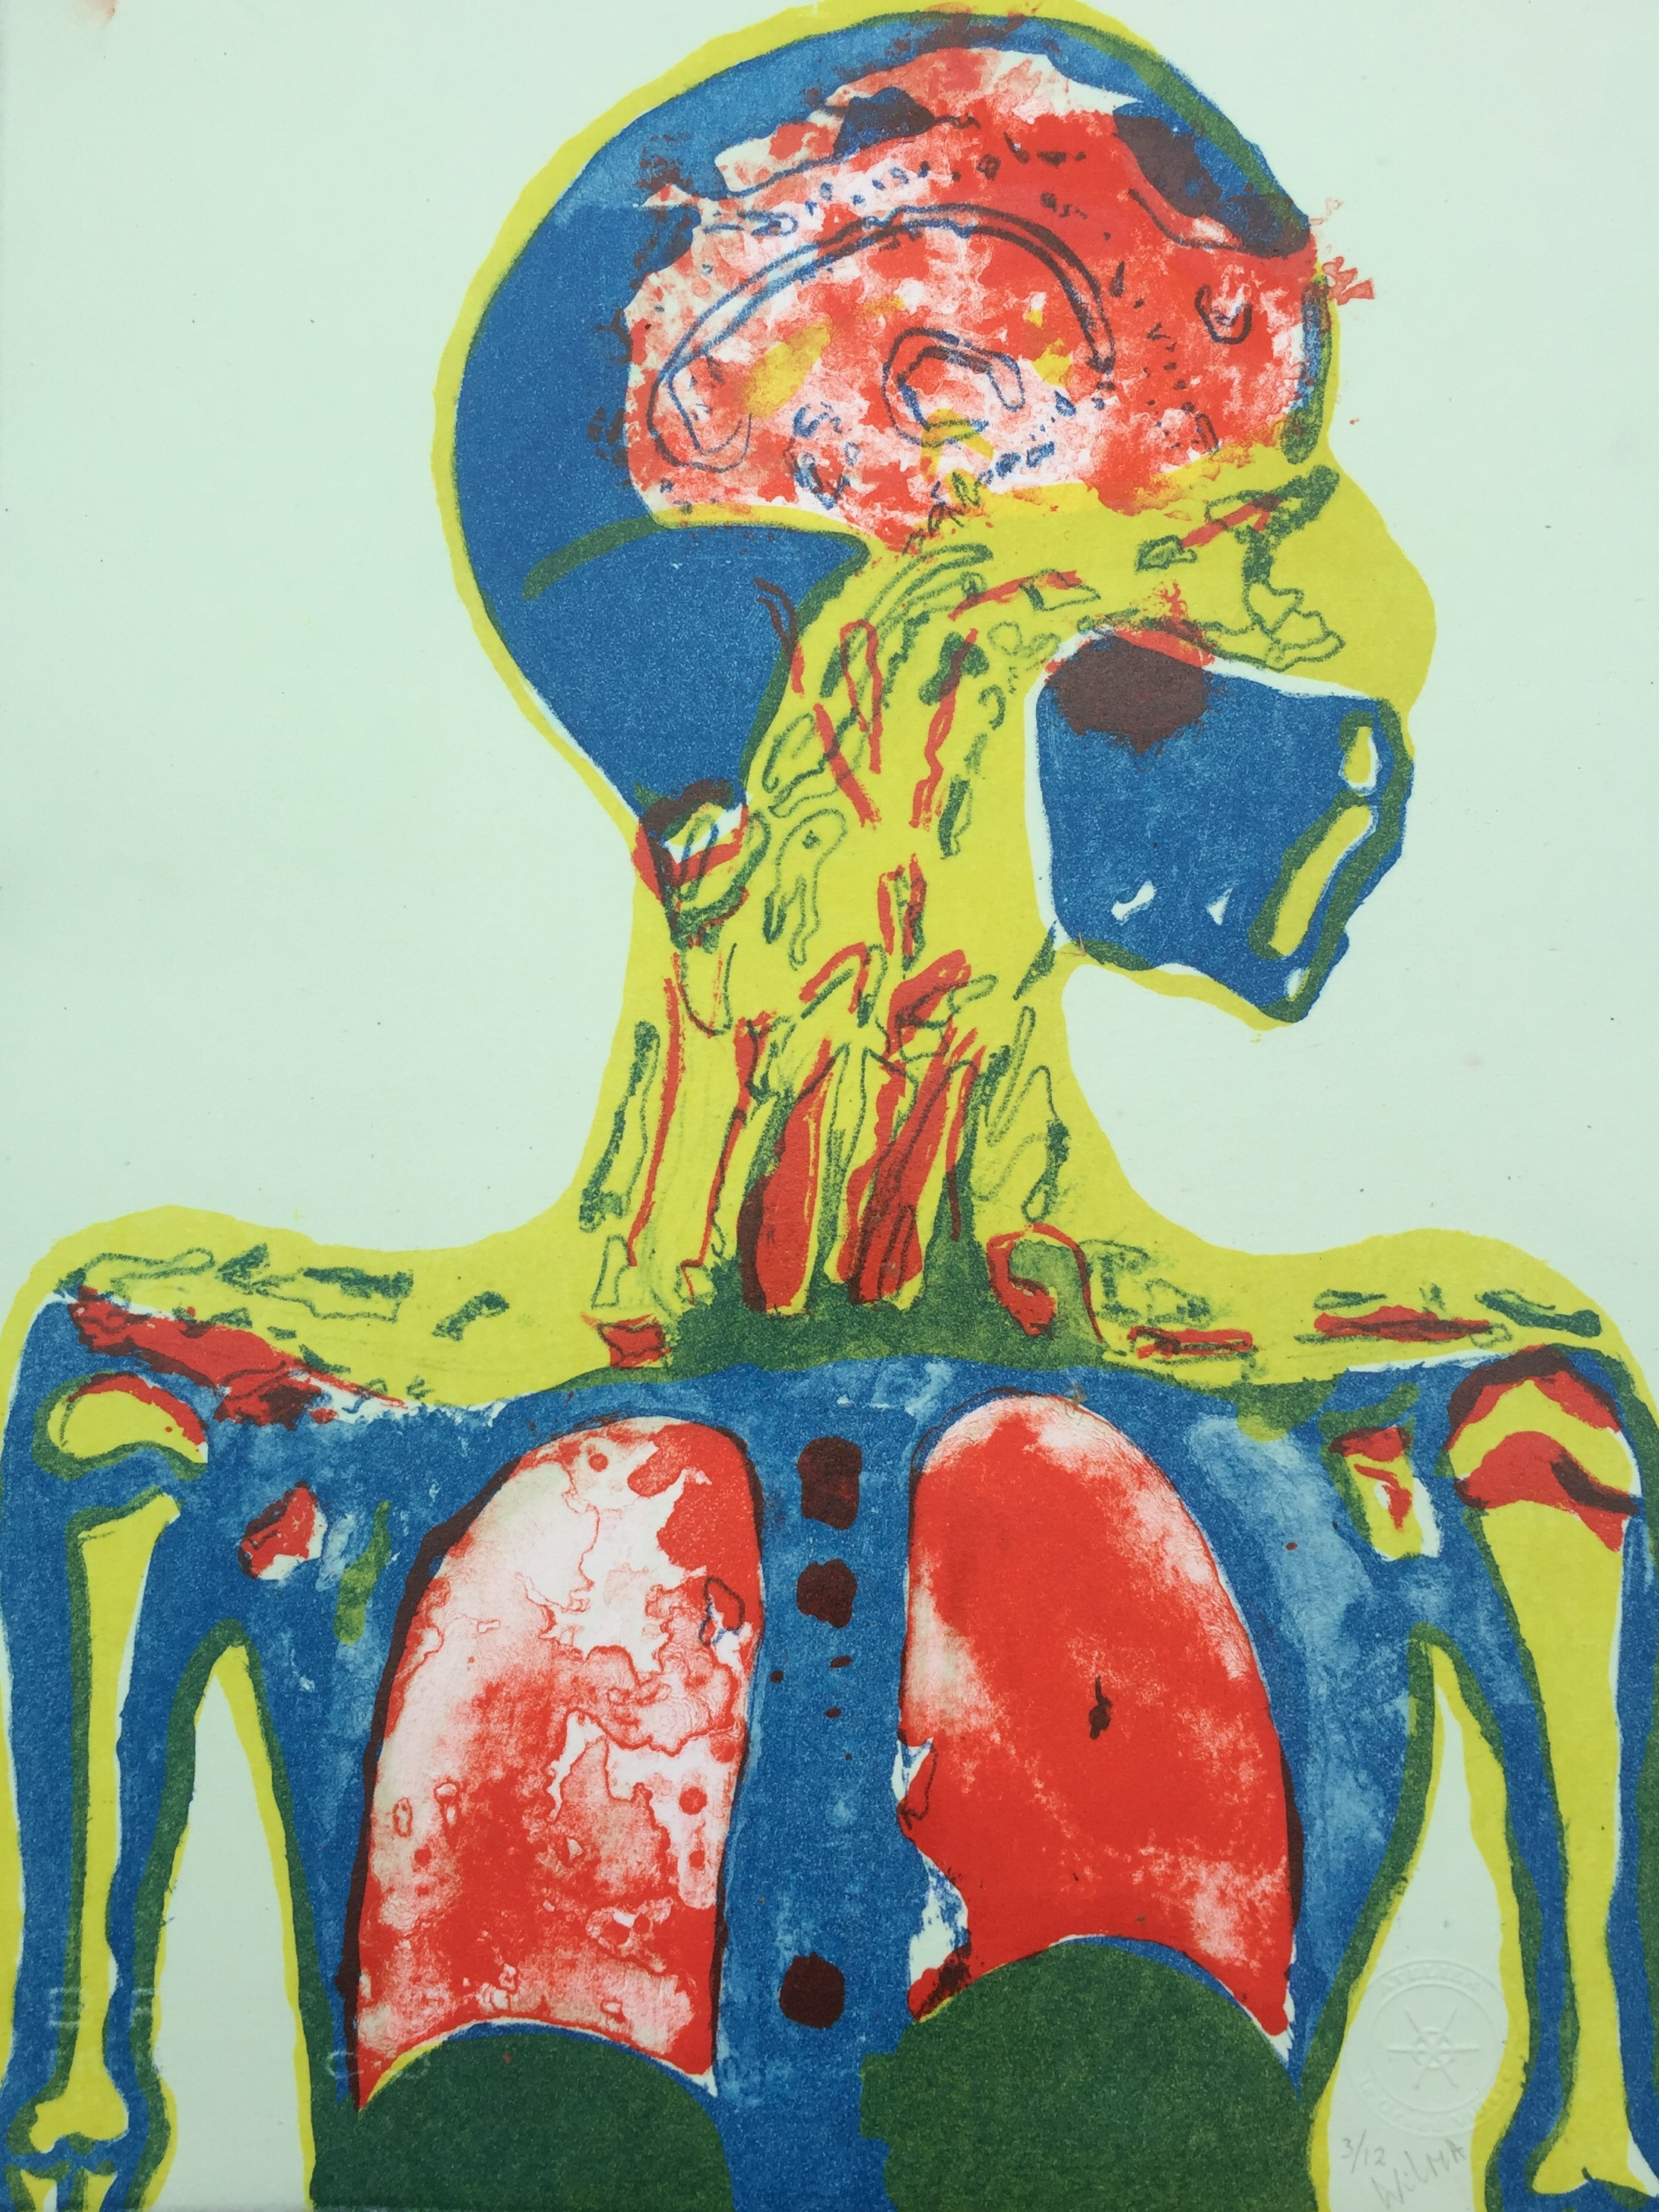 2020 COVID related MR lithography where lungs and teh brain are infected